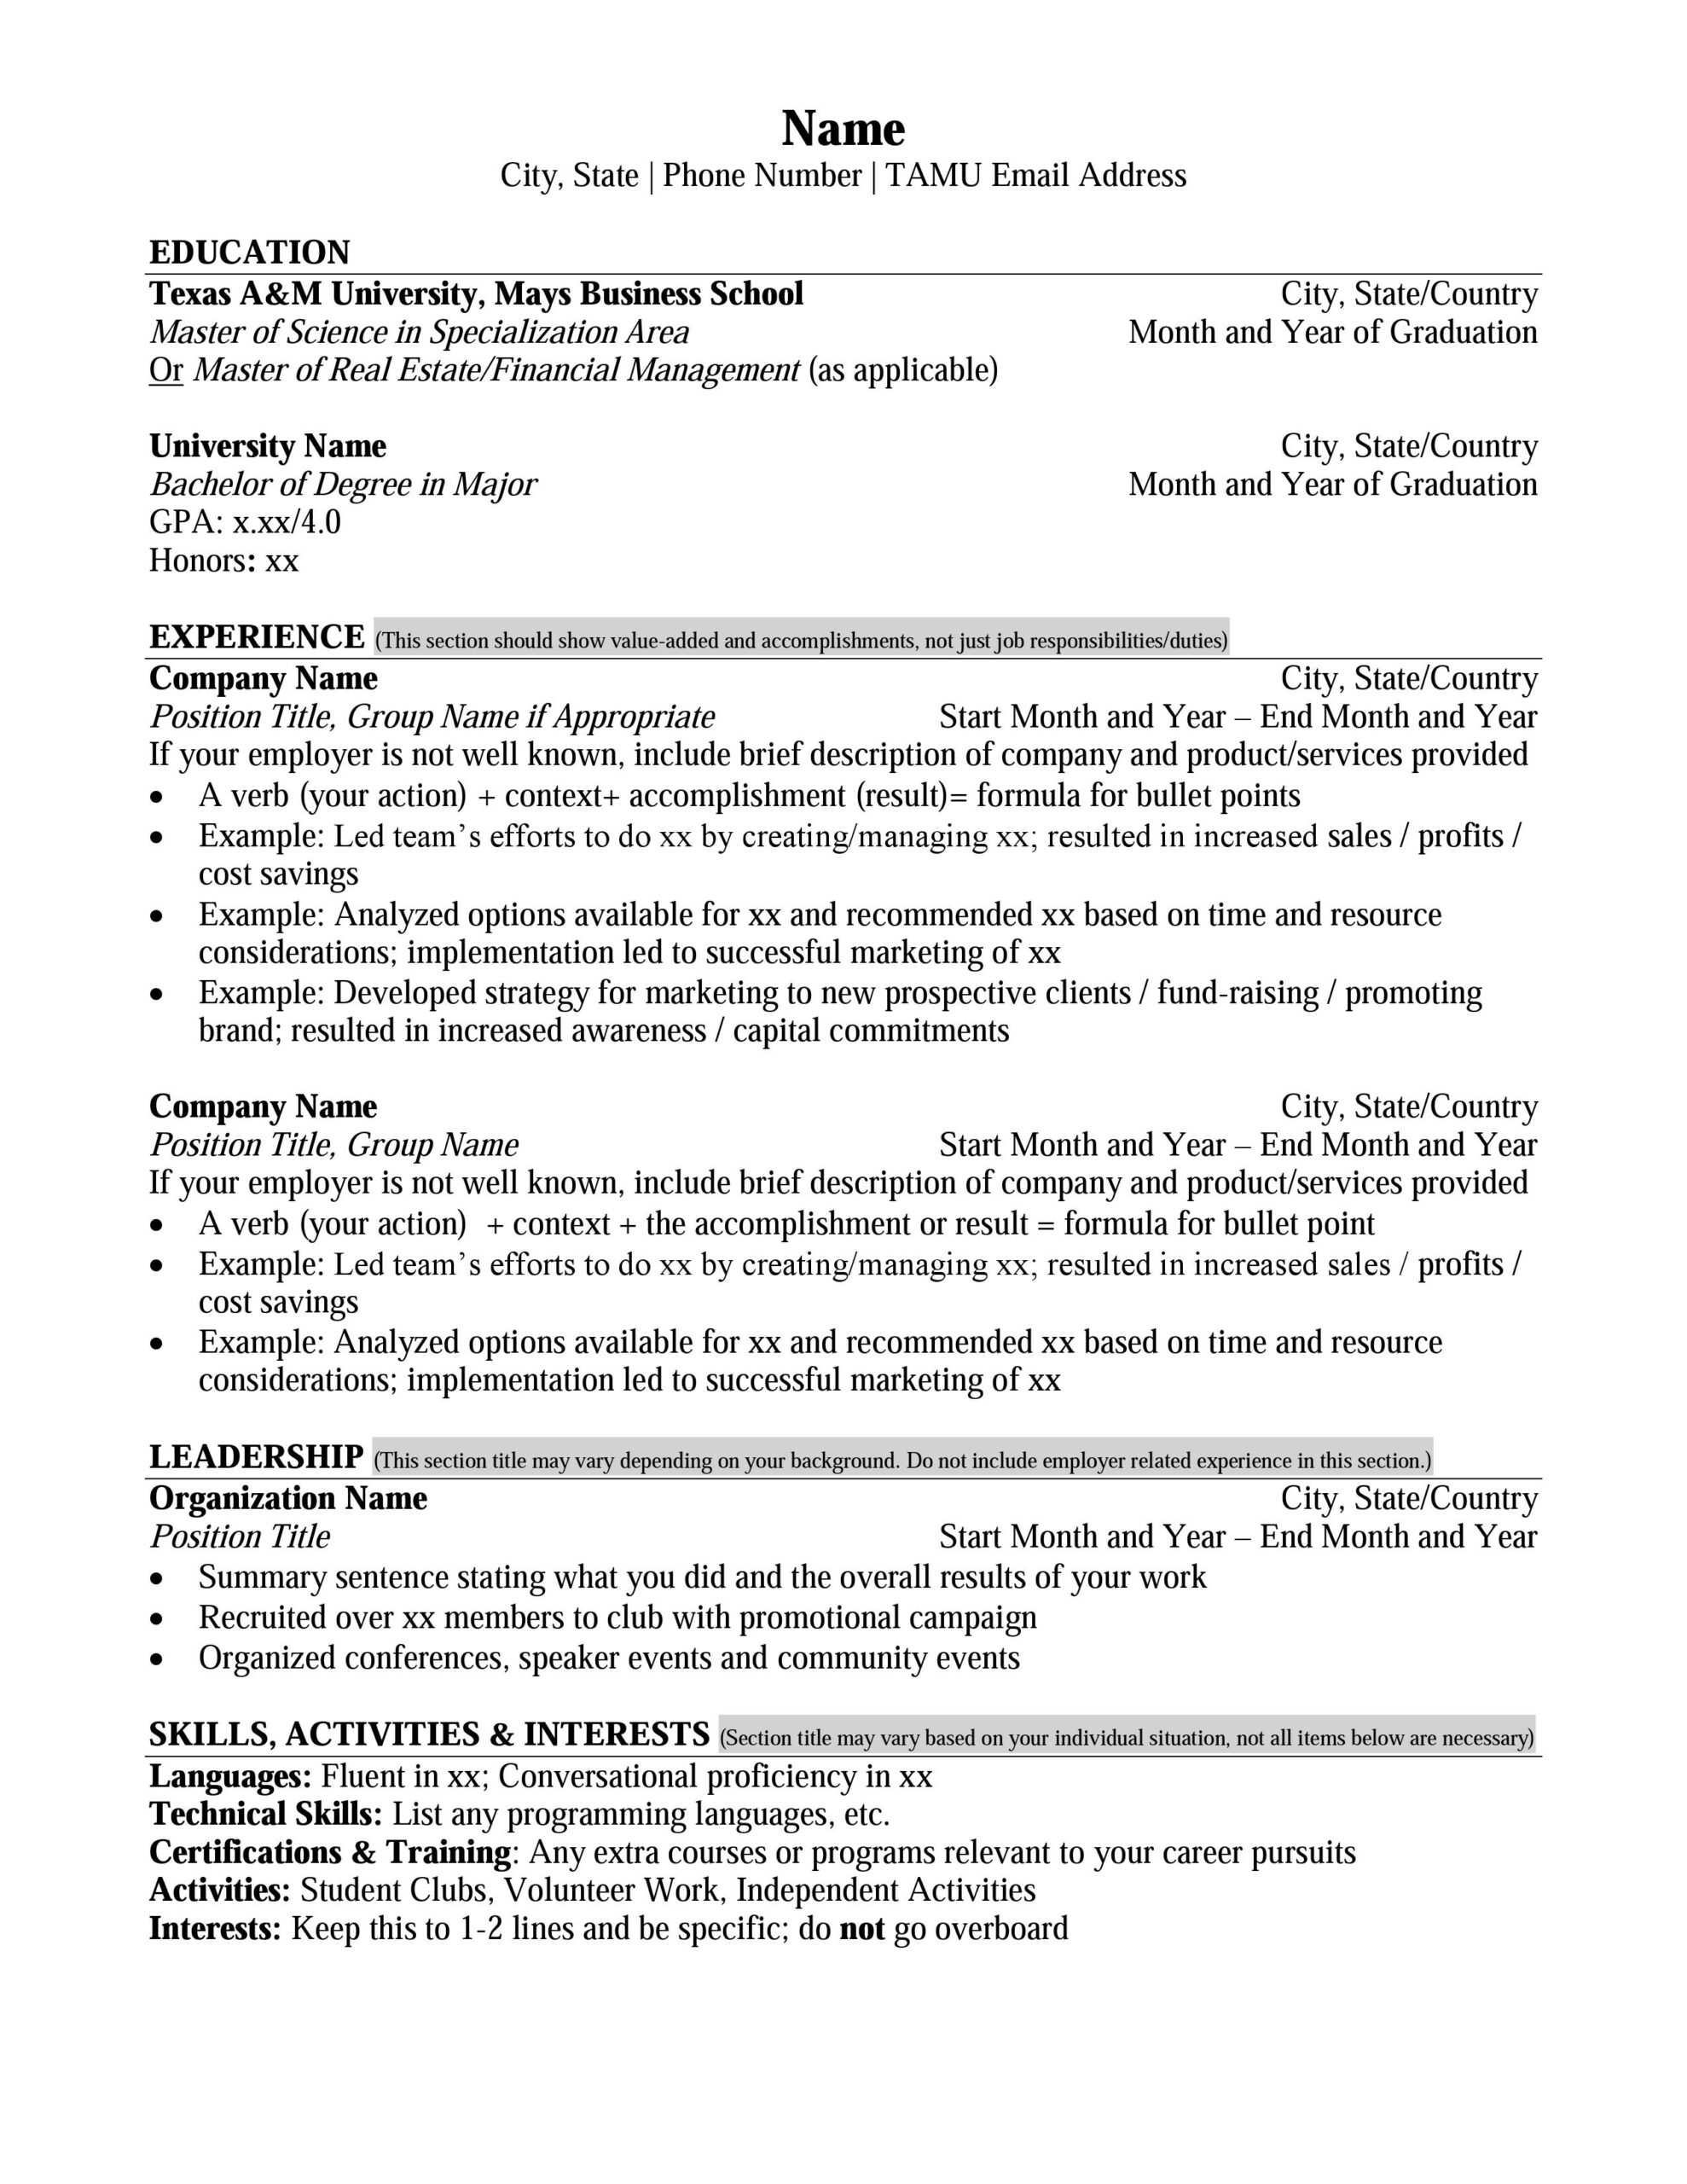 mays masters resume format career management center business school for program ms office Resume Resume For Masters Program